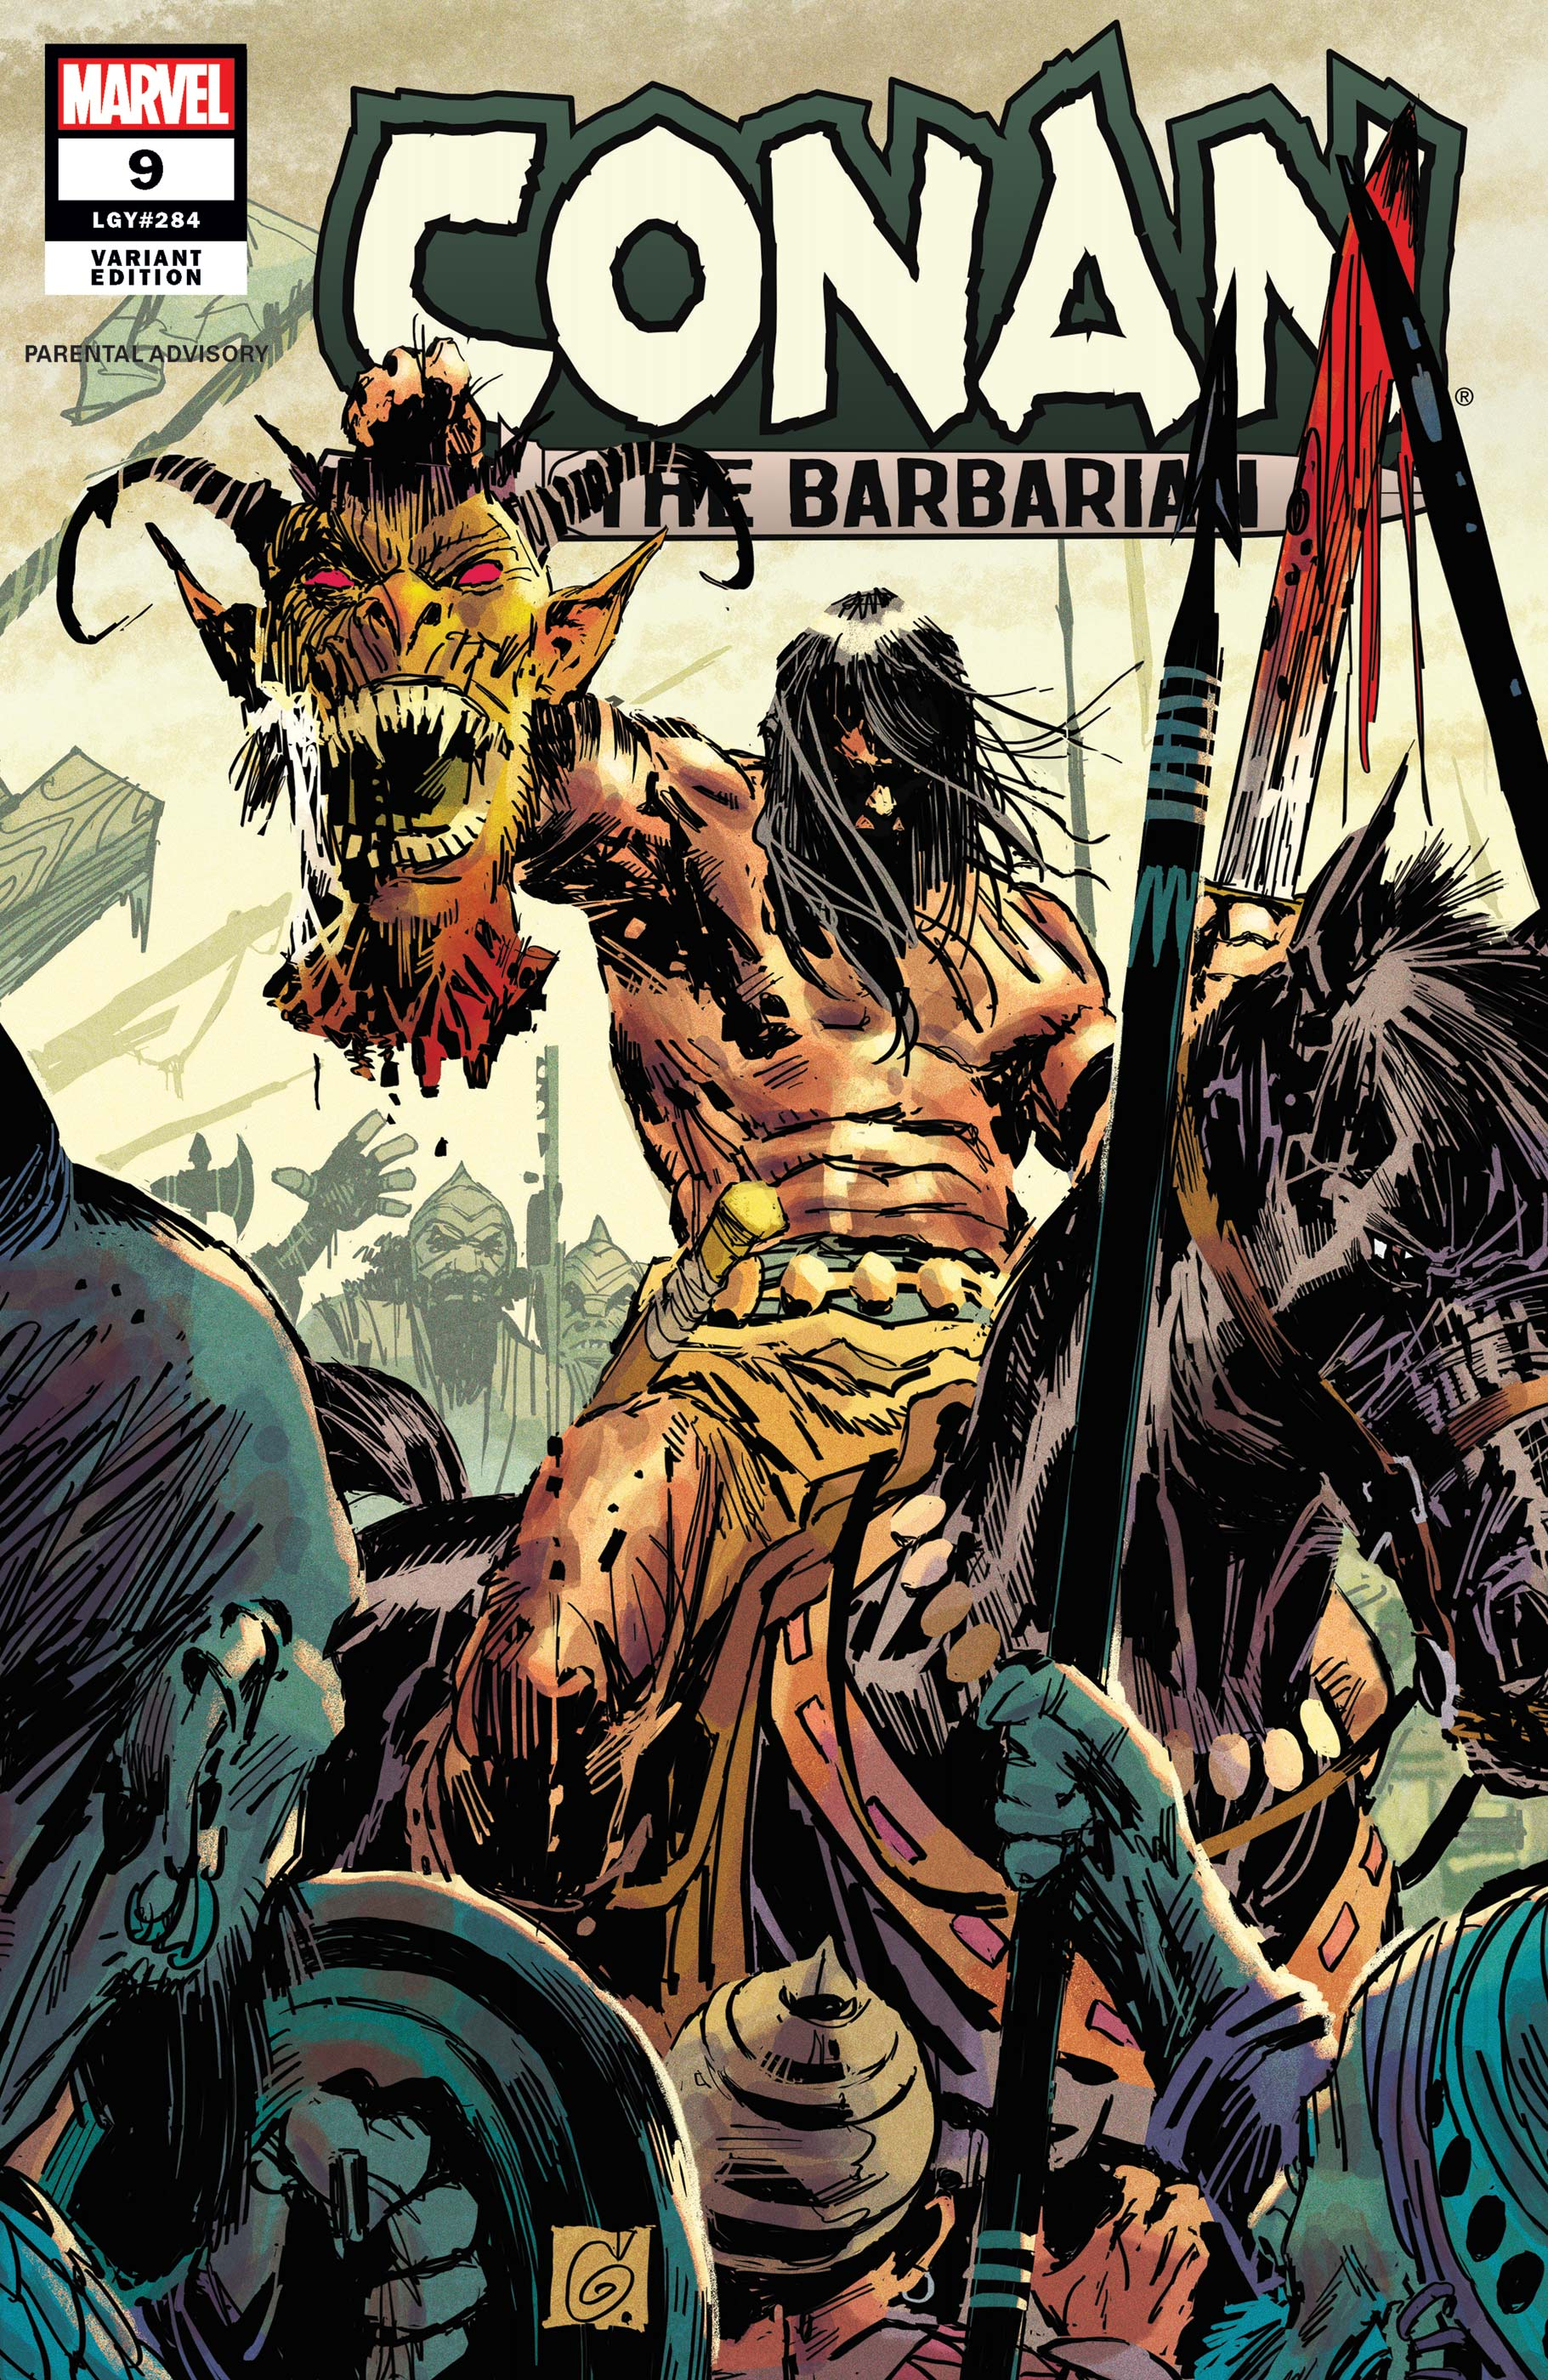 Conan the Barbarian (2019) #9 (Variant)